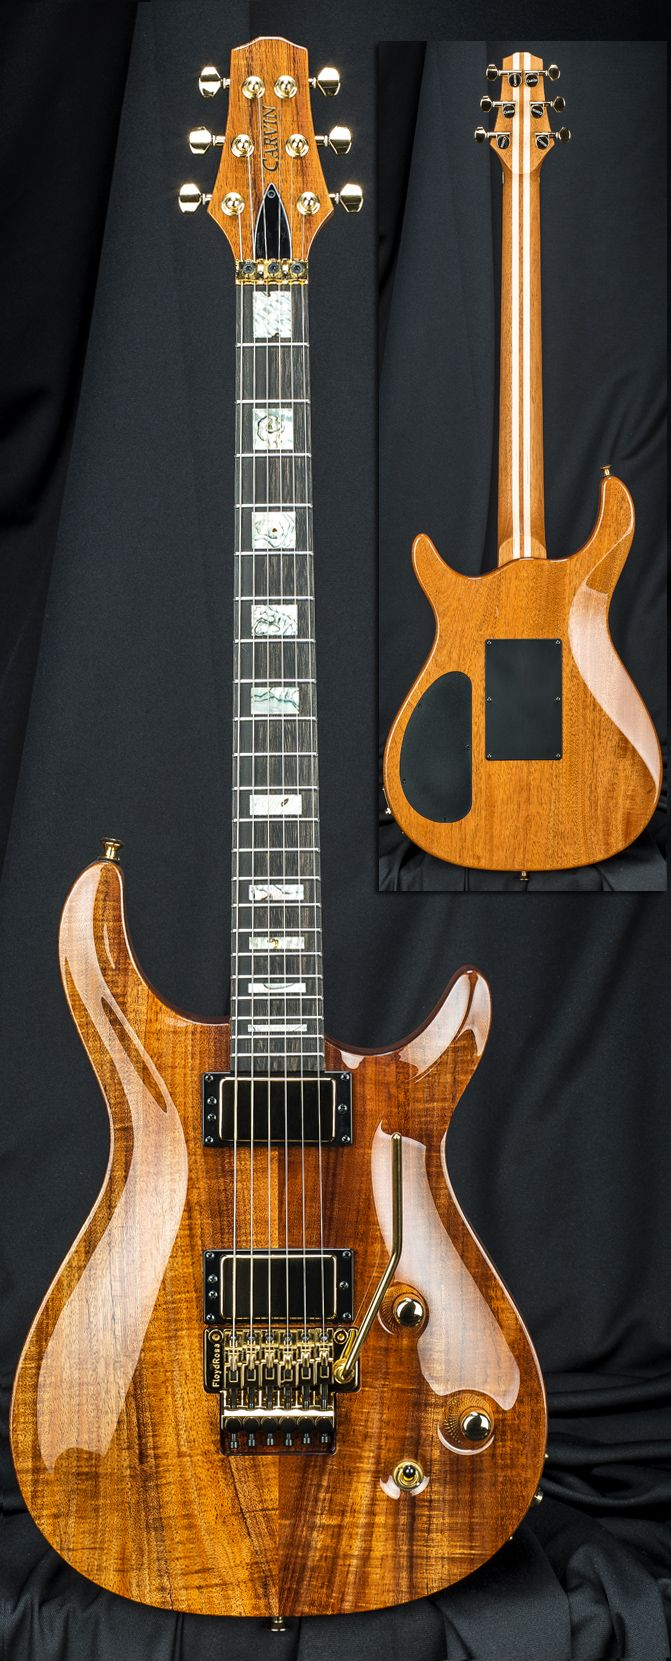 Carvin Guitars CT6C California Carved Top with Floyd Rose Tremolo Serial Number 122354